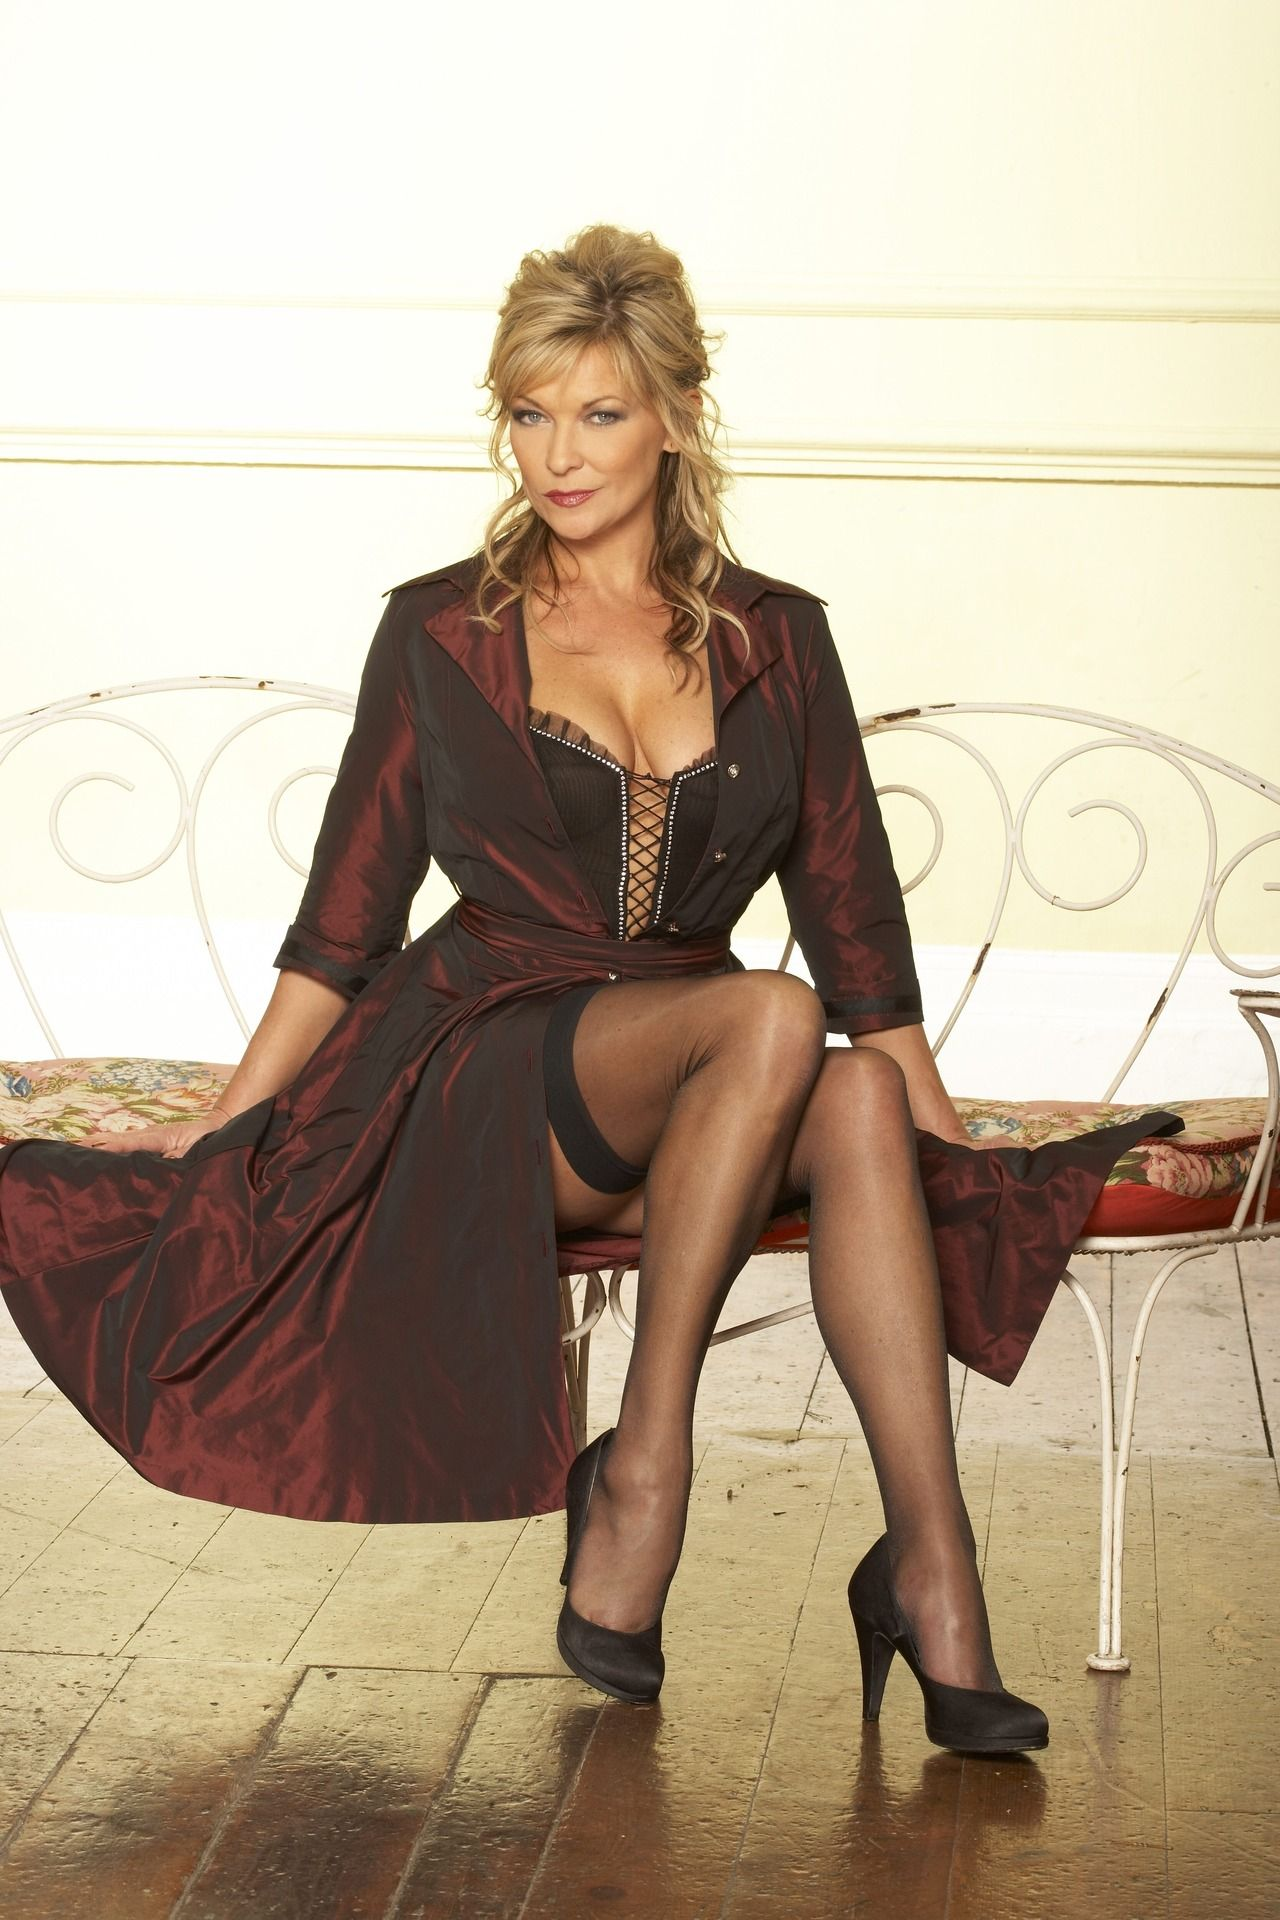 huntington mills mature personals A milf is a sexy mature lady who wants to hook up for sex so if you are seeking local milfs and want to get into milf dating visit localmilf and join now.